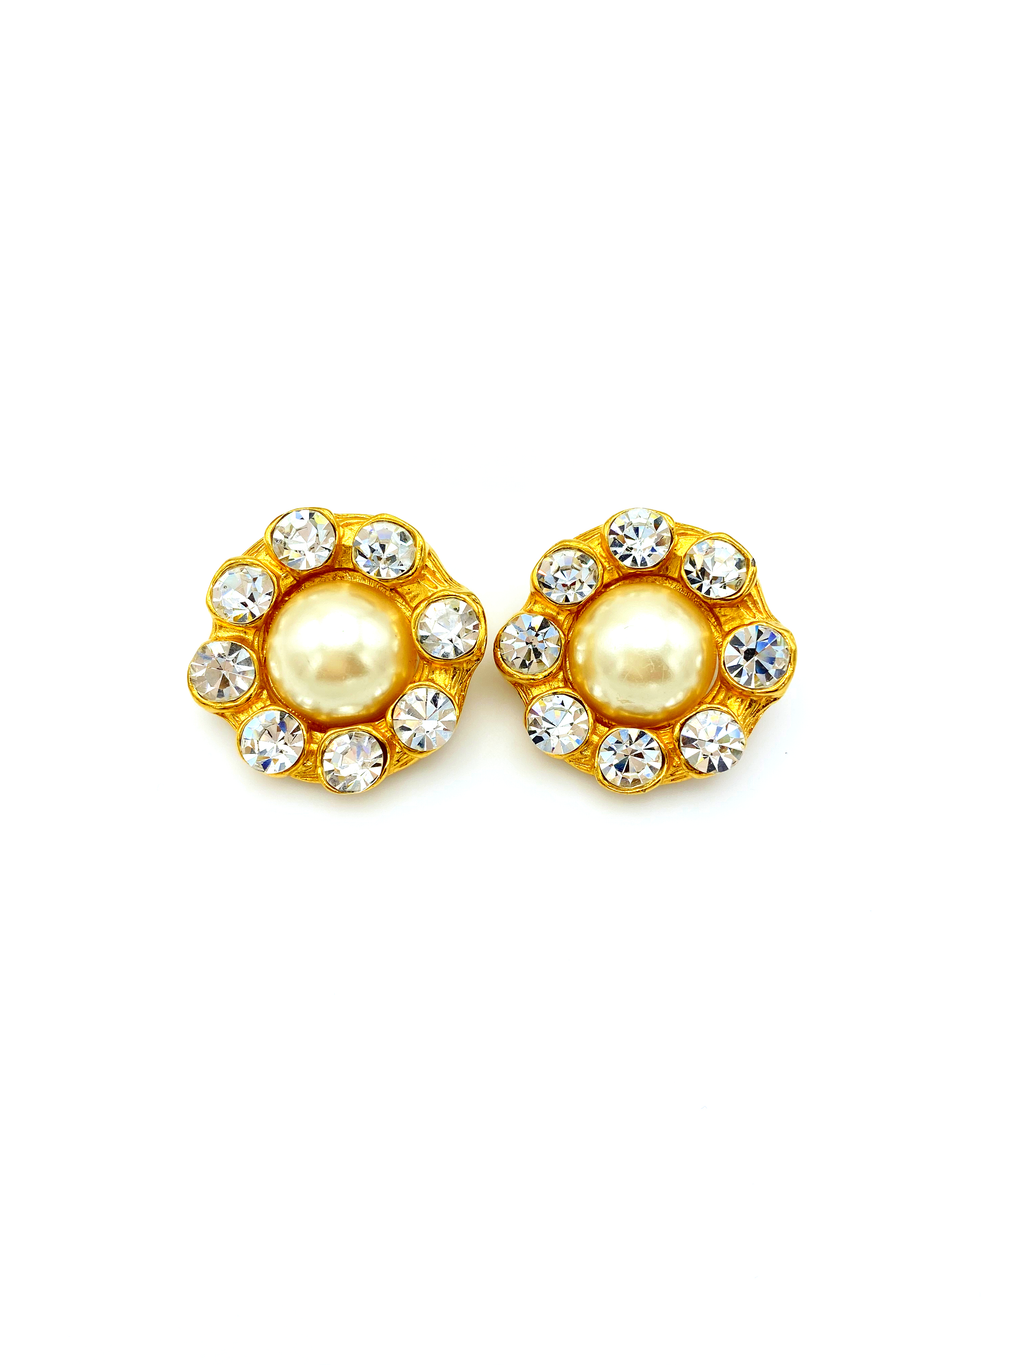 Large Gold Pearl & Rhinestone Statement Vintage Earrings-Sustainable Fashion with Vintage Style-Trending Designer Fashion-24 Wishes